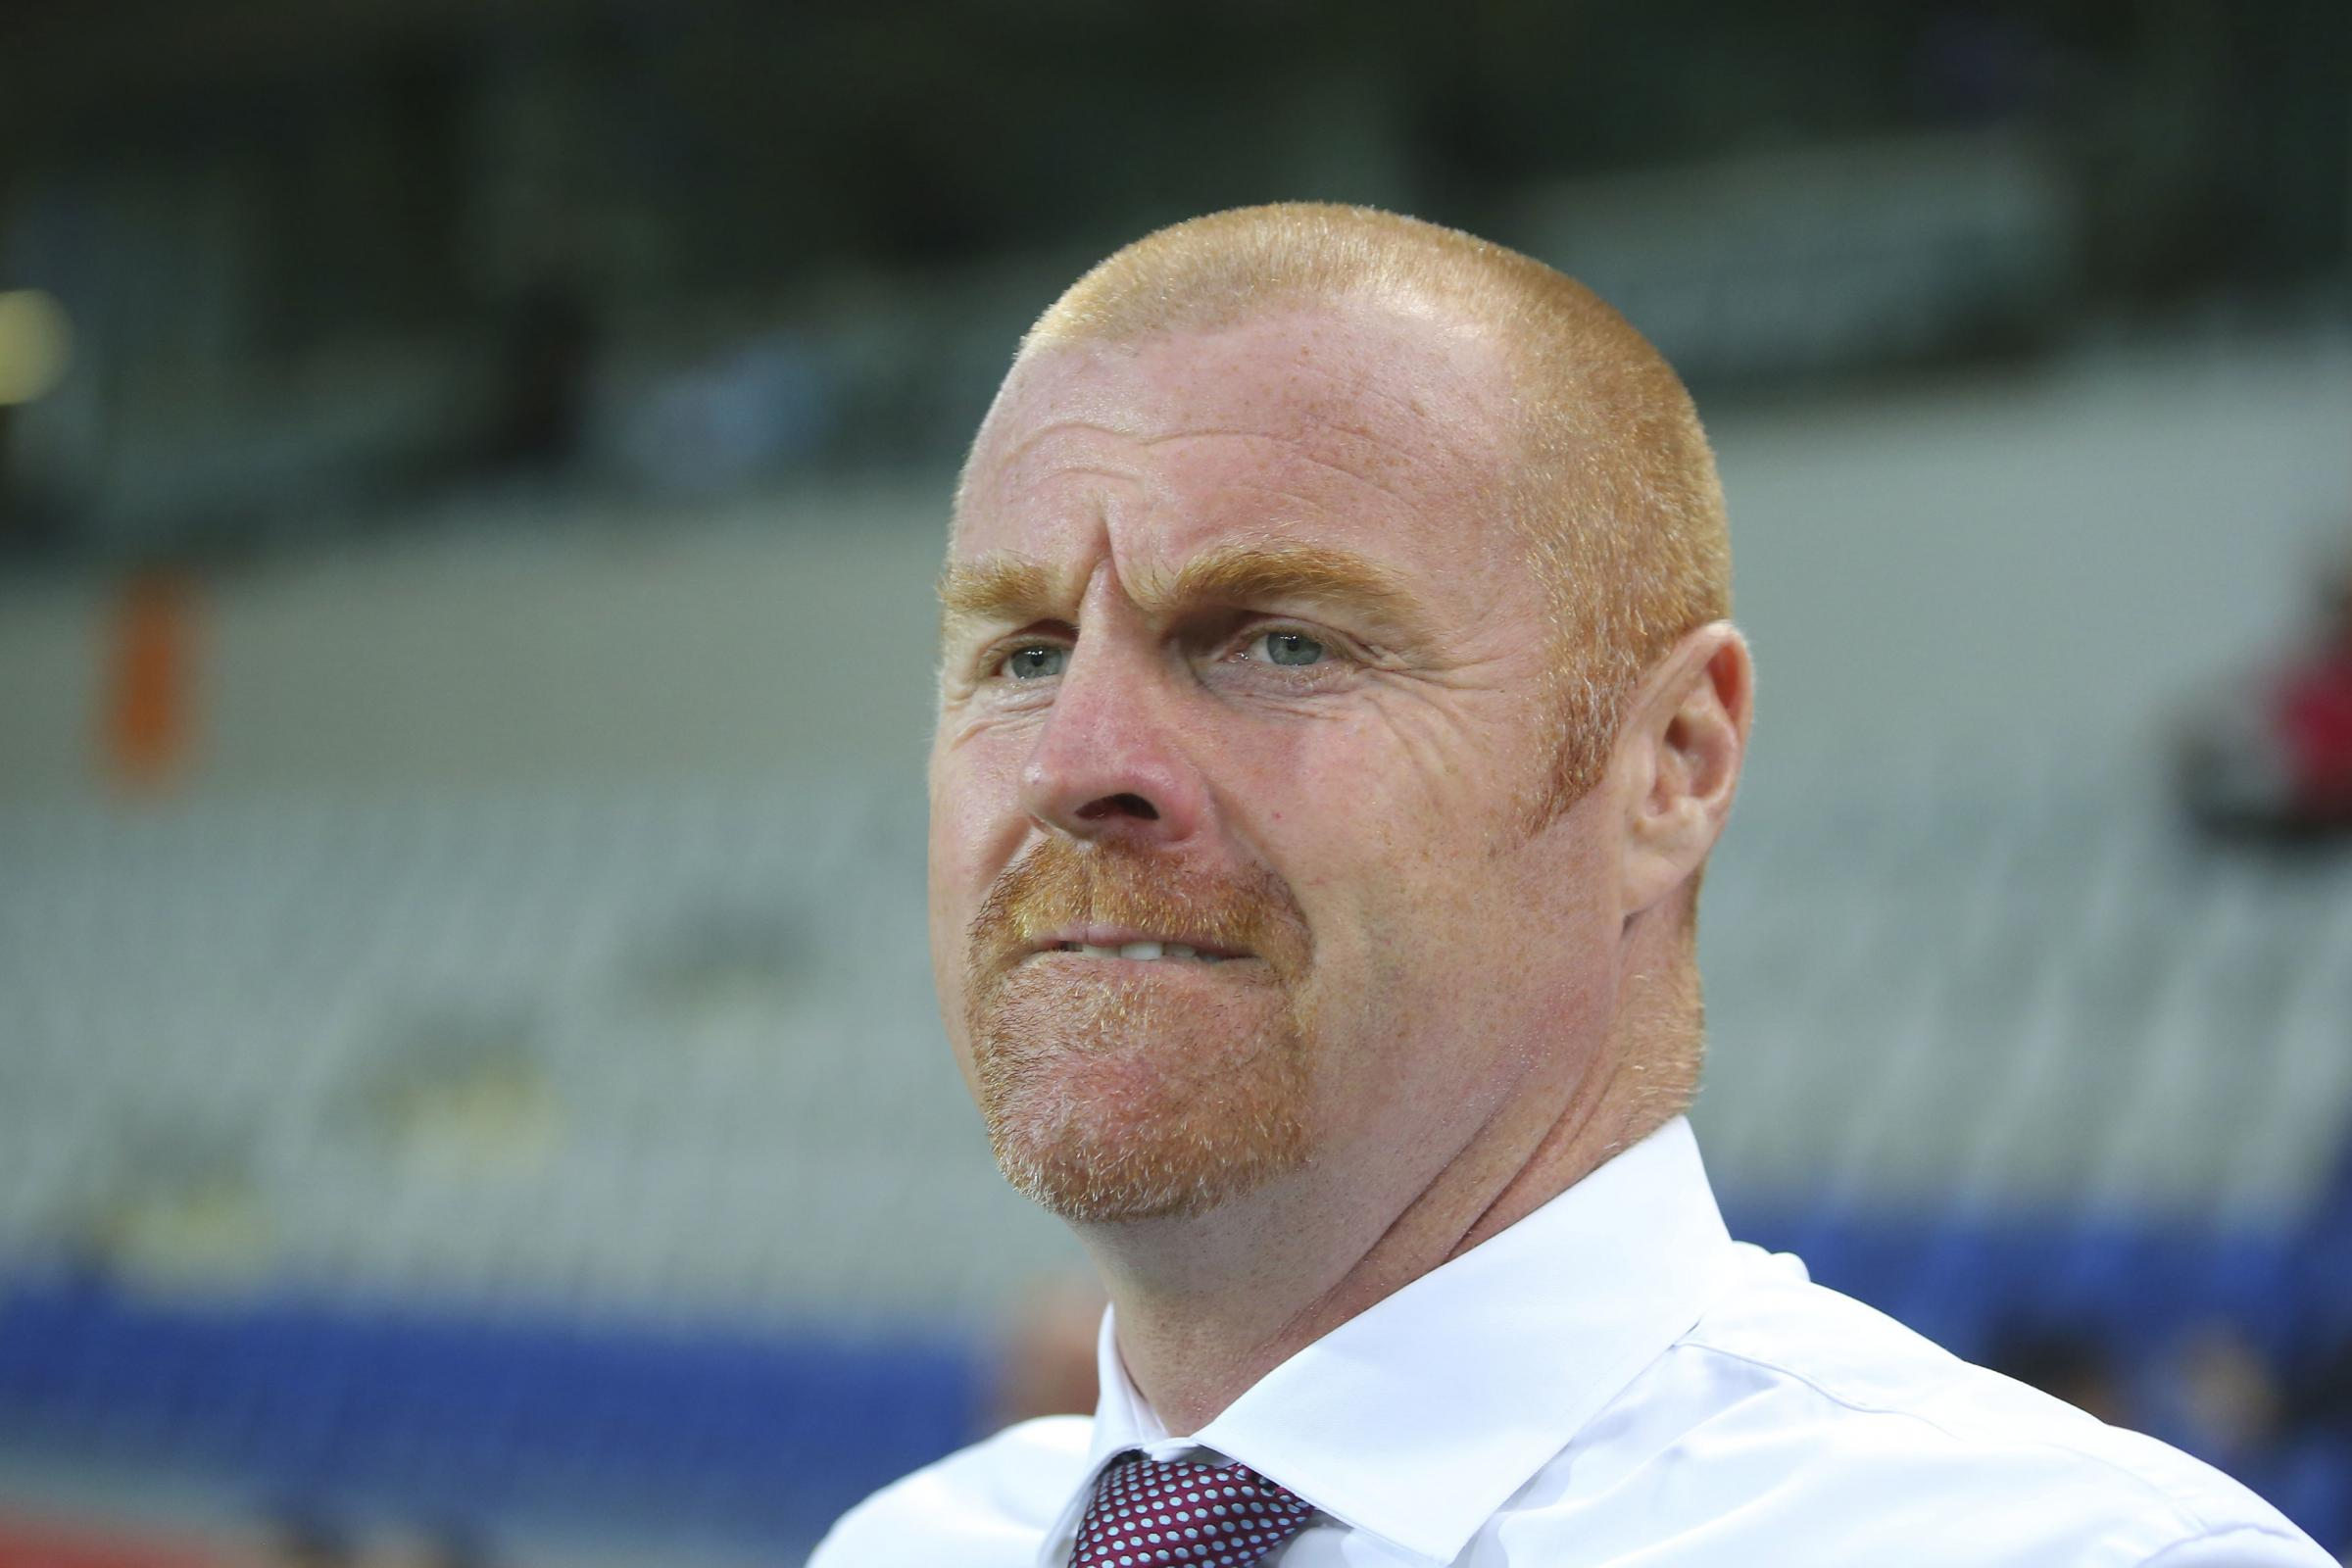 Sean Dyche said the summer transfer window had been the worst he'd ever experienced as a manager